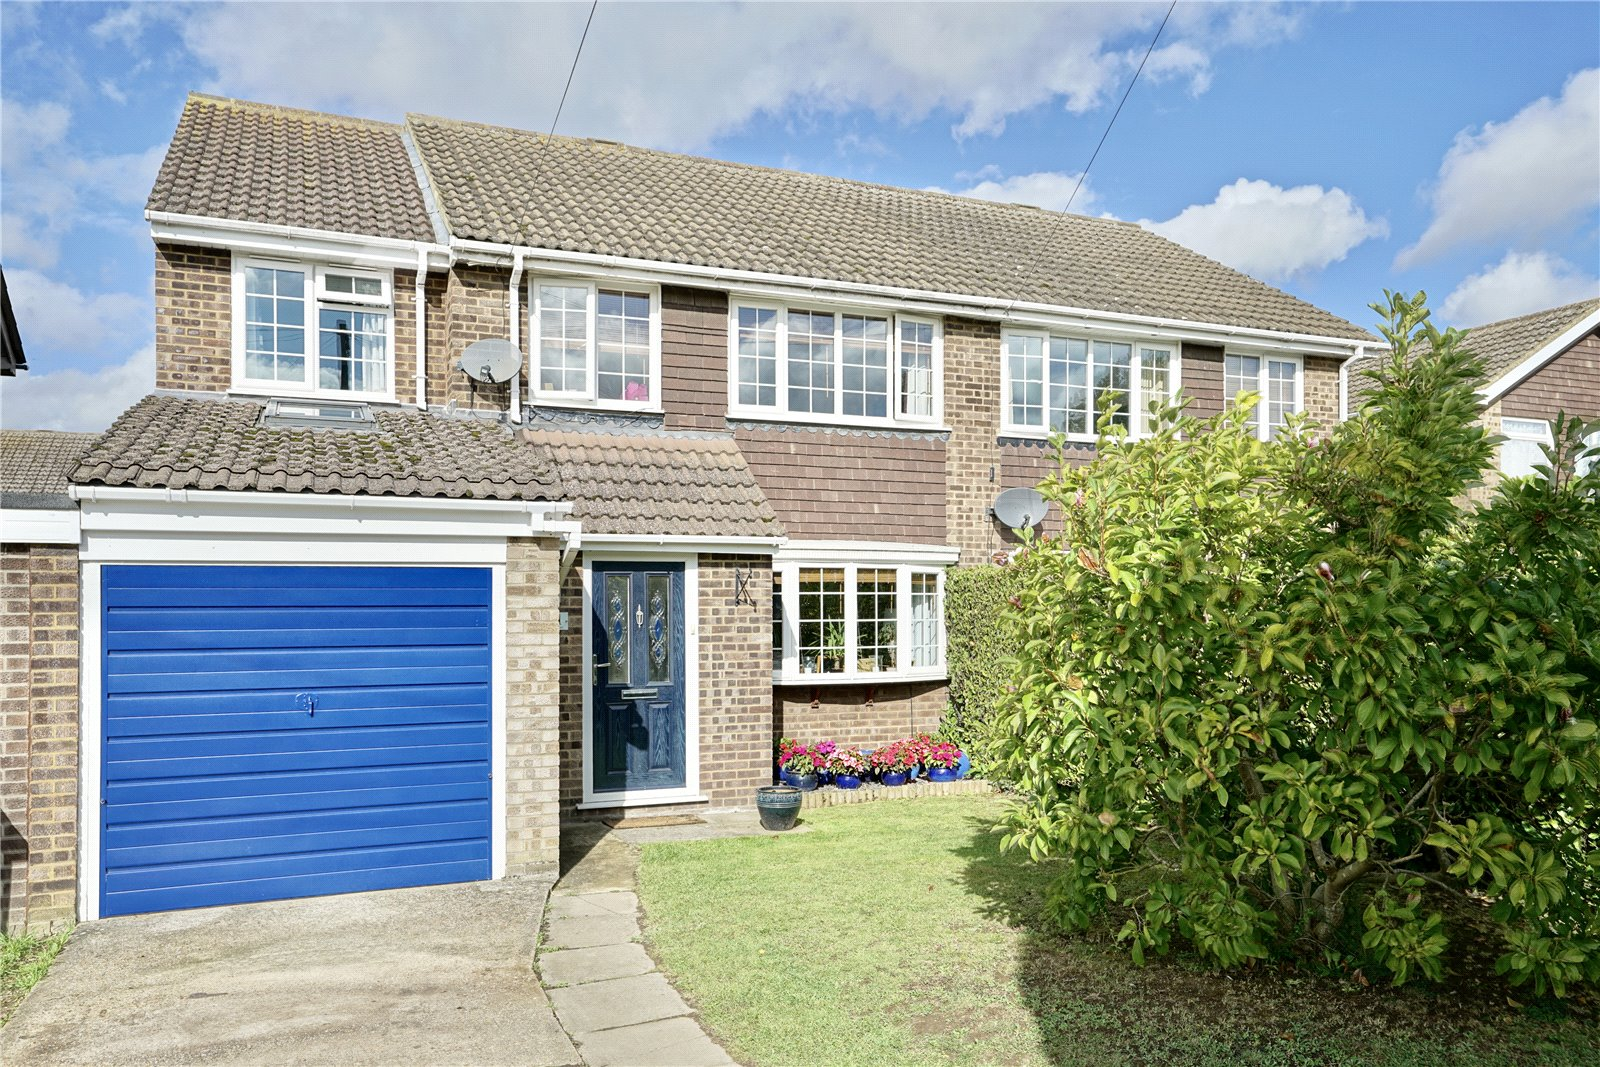 5 bed house for sale in Eaton Ford, Ivel Close, PE19 7JU, PE19